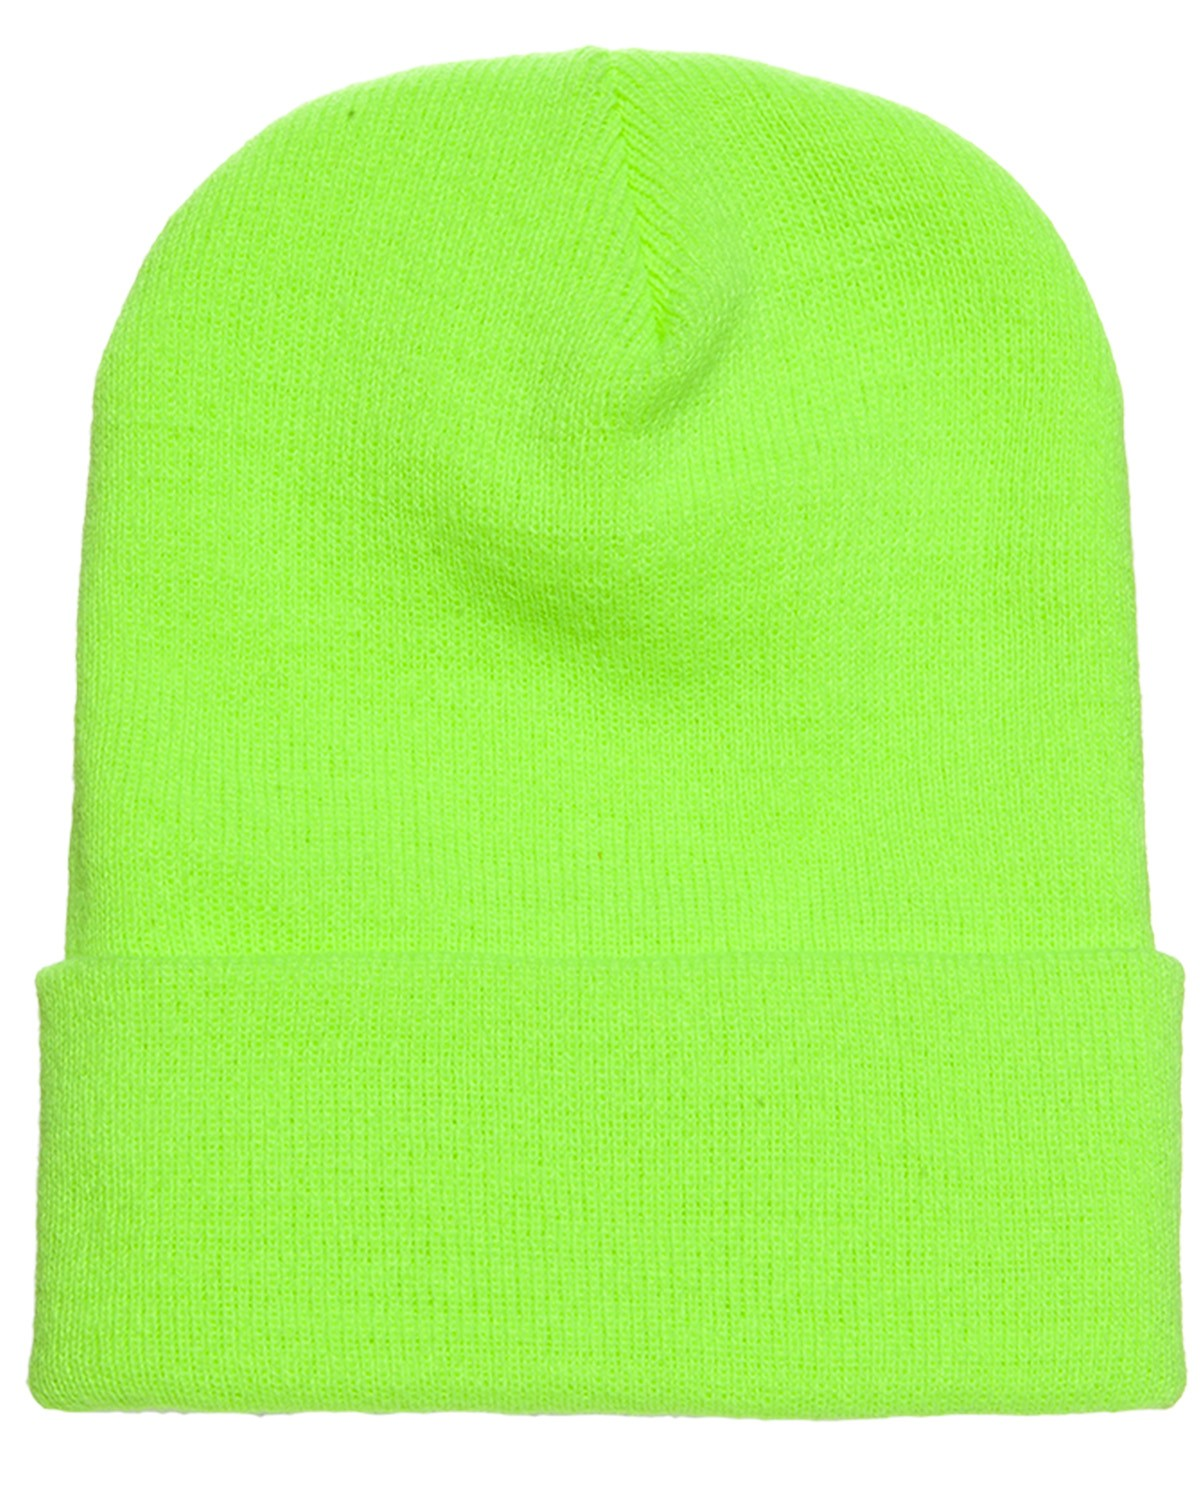 1501 Yupoong SAFETY GREEN